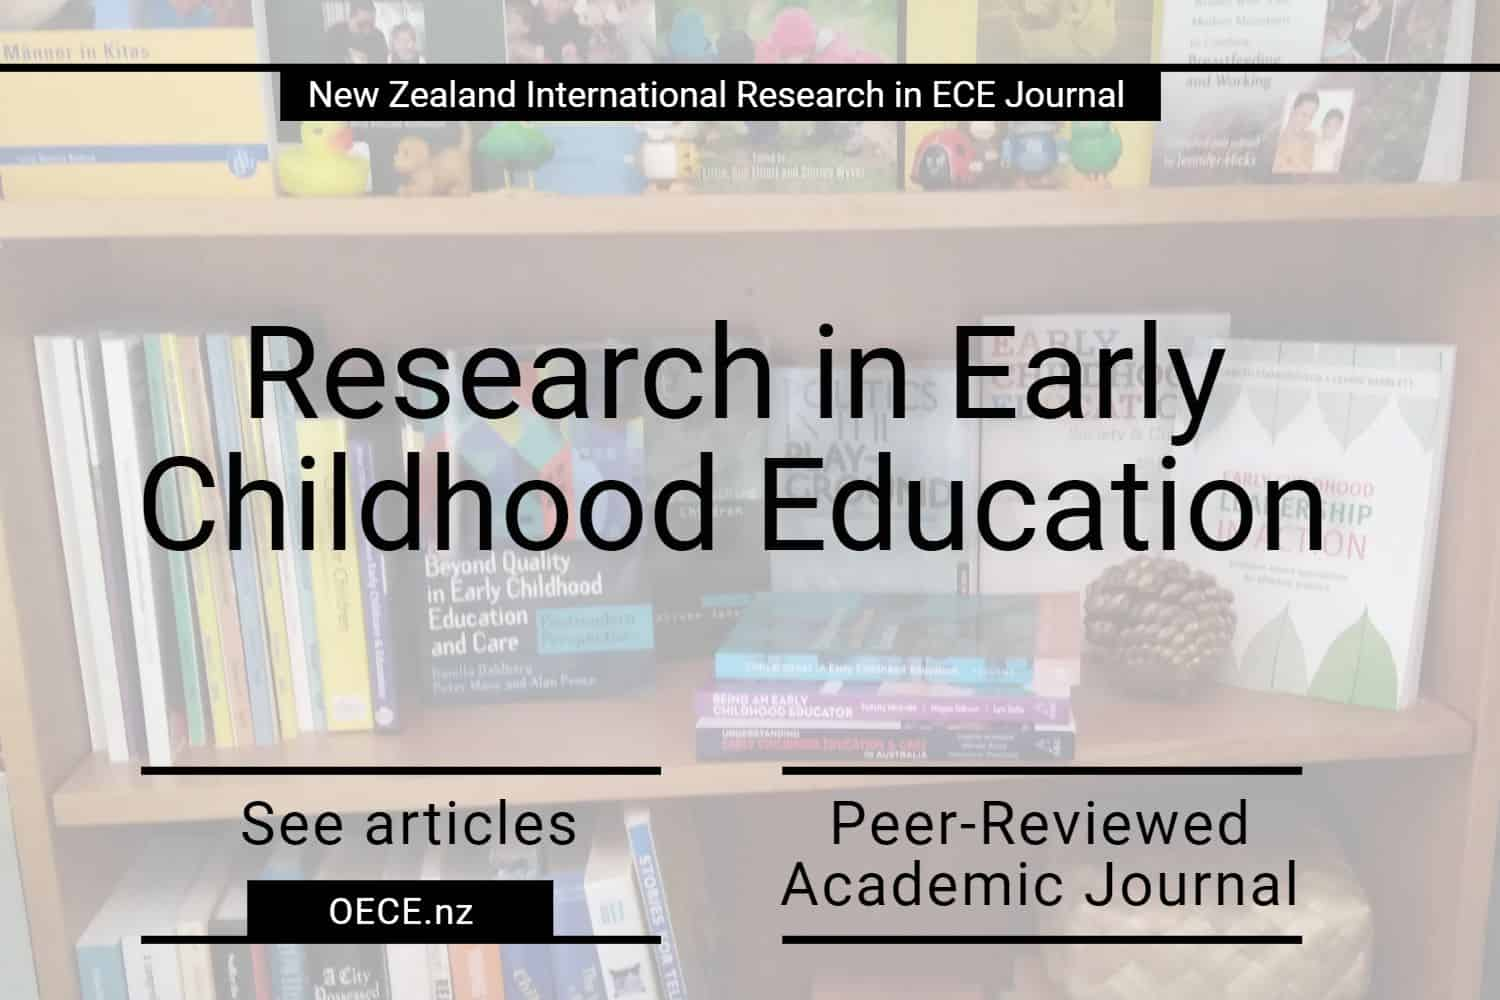 NZ International Research in Early Childhood Education journal